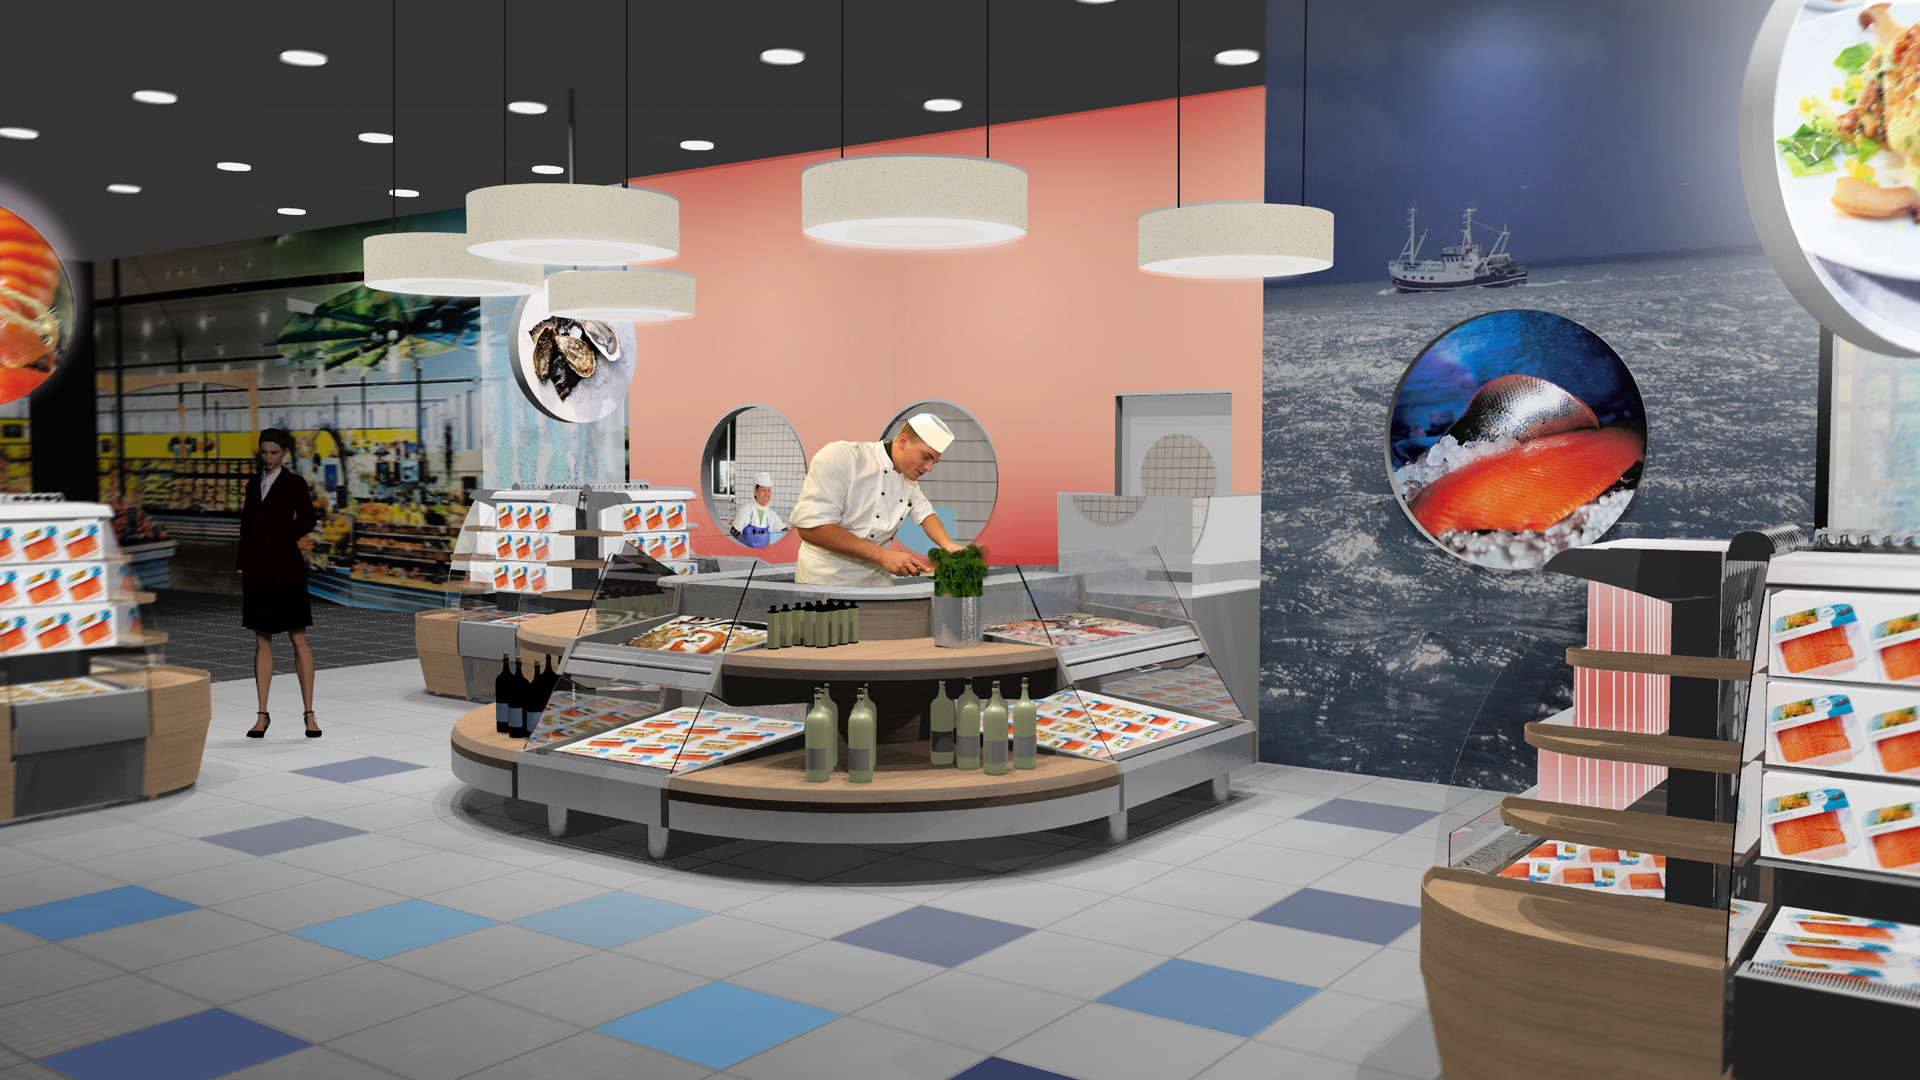 shop-design-seafood4.jpg